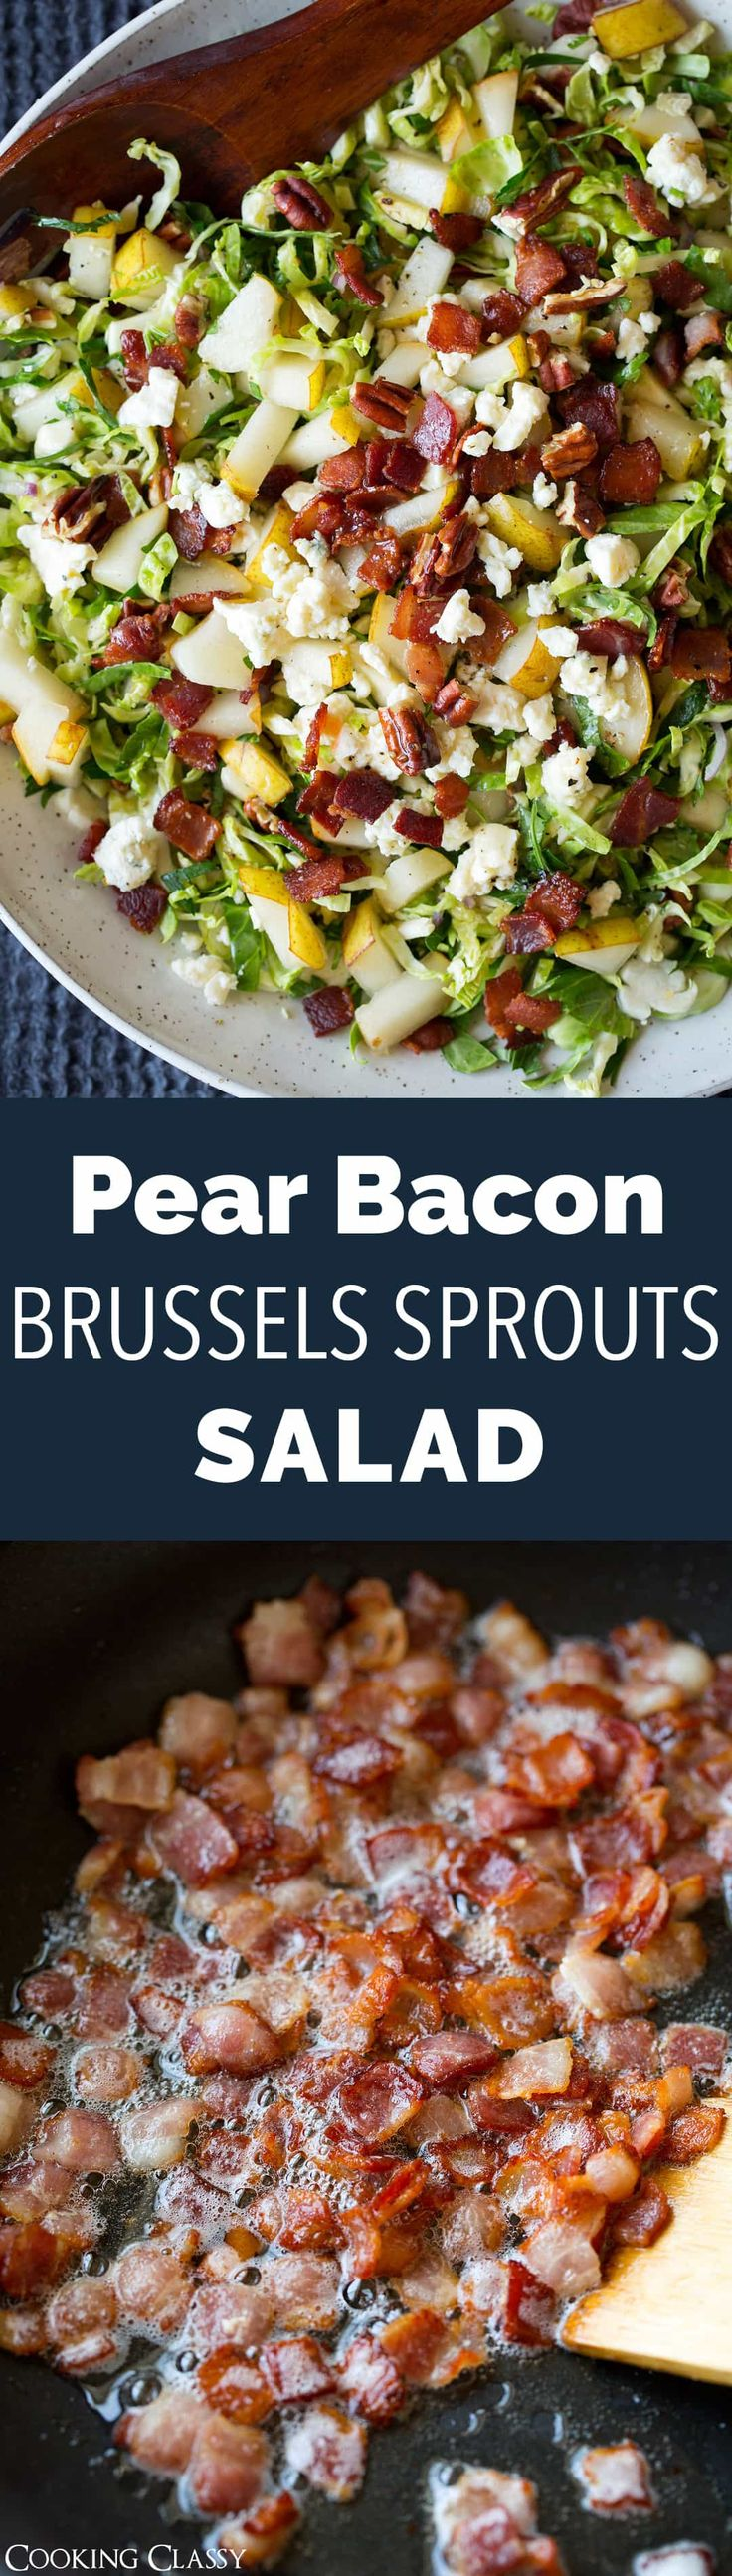 Pear Bacon and Brussels Sprout Salad - A delicious autumn pear salad that's brimming with bacon, nutty toasted pecans, tangy gorgonzola cheese, all with a base of finely shredded raw brussels sprouts. So delicious!